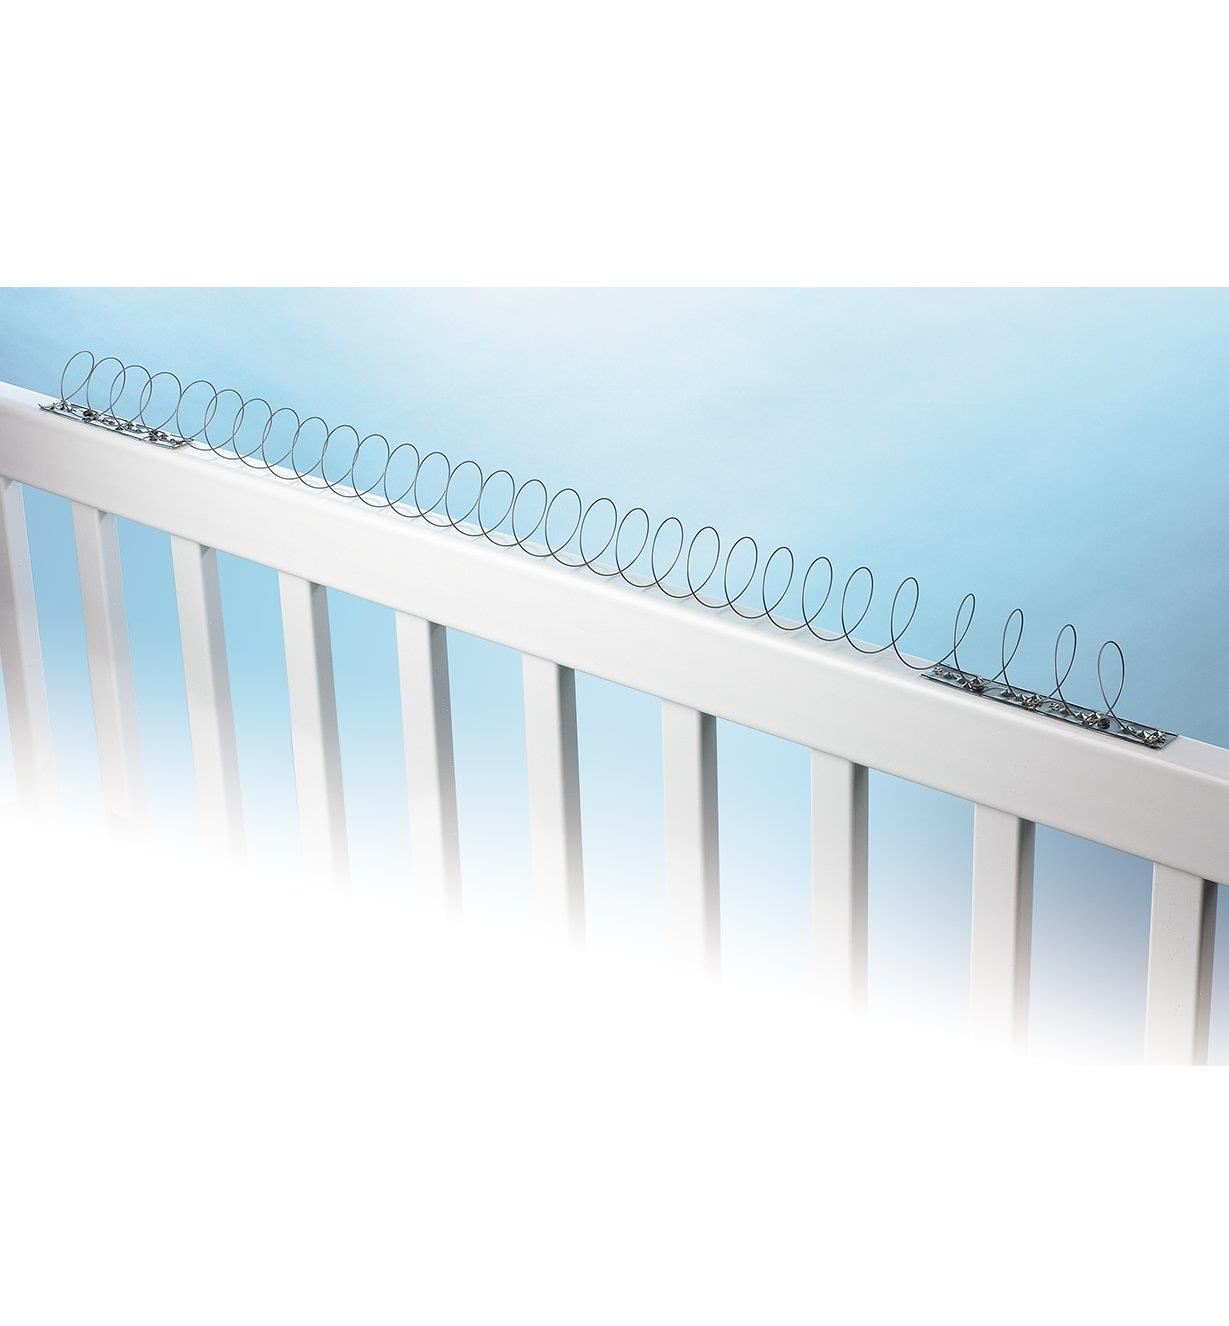 Flexible coil installed on railing